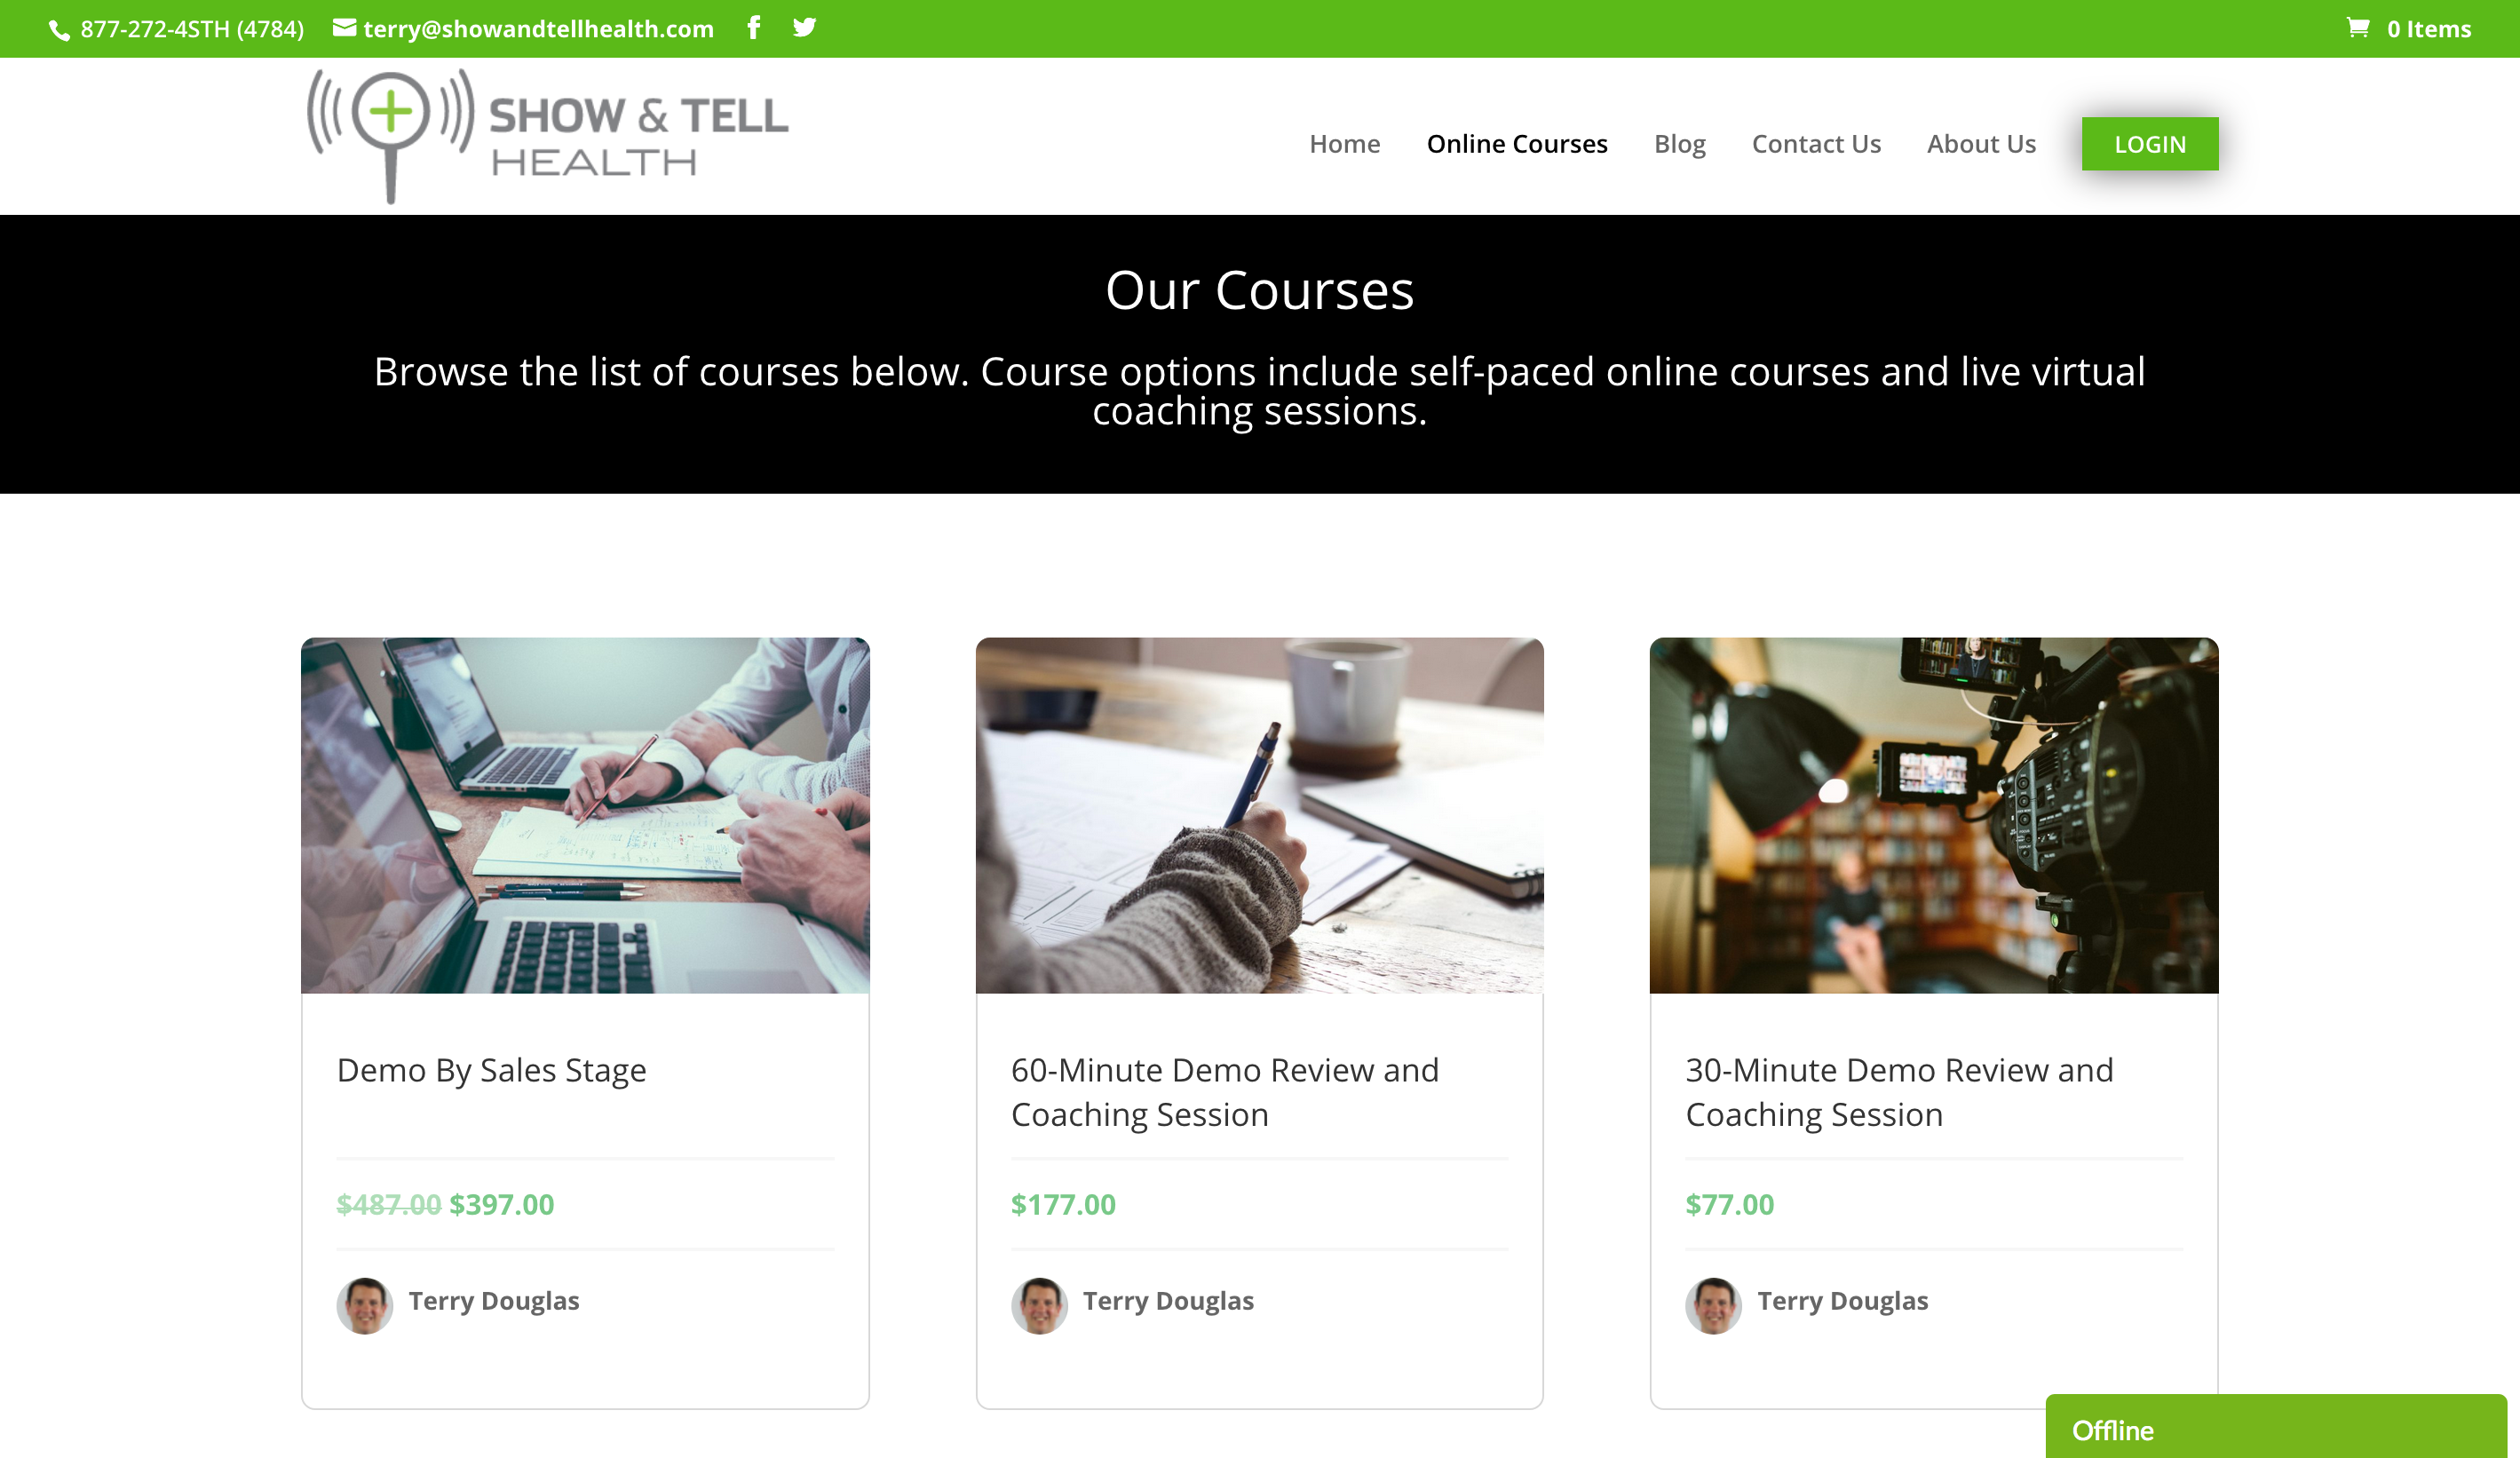 LMS eLearning platform sell courses online